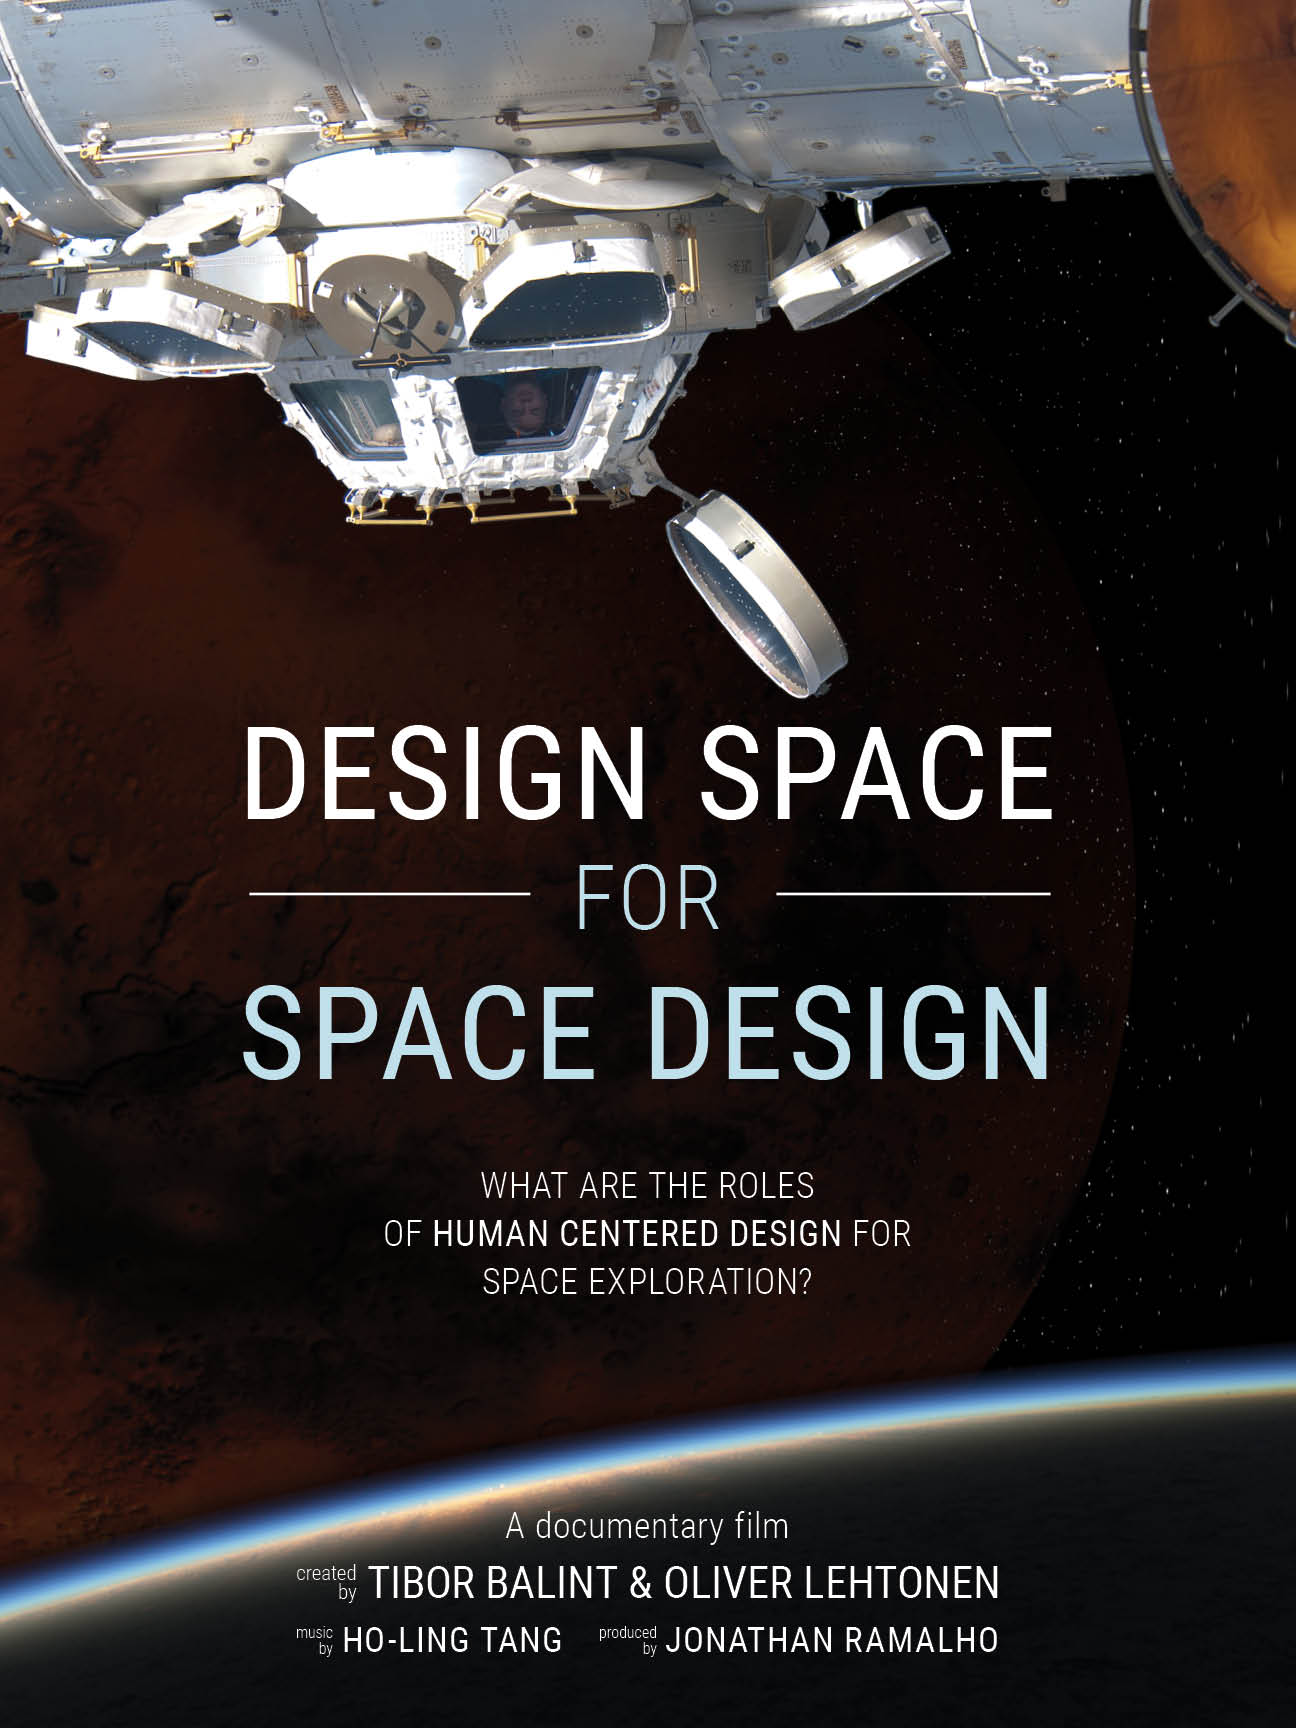 Design Space for Space Design (2018) - IMDb